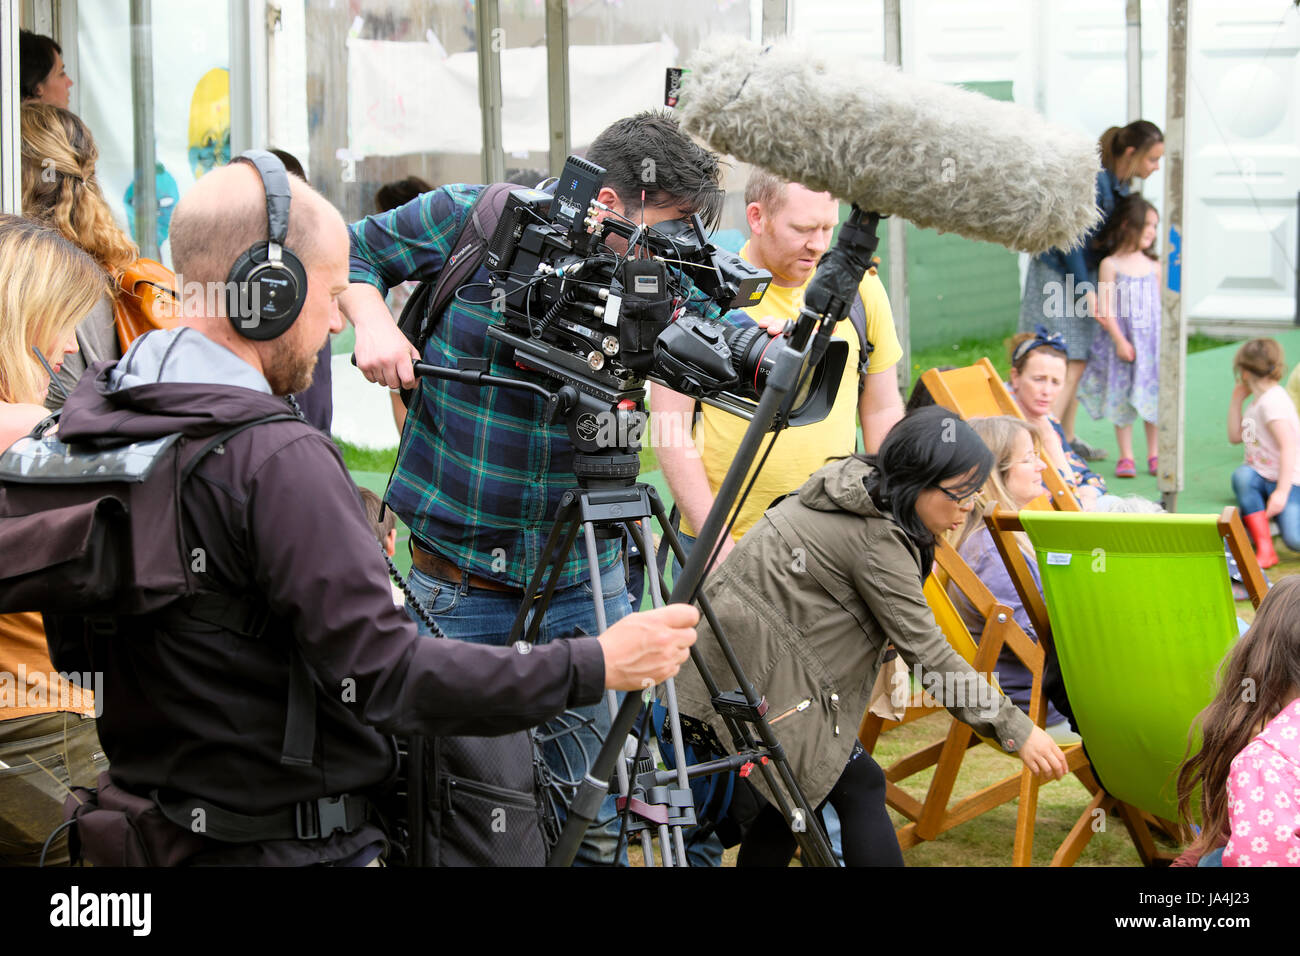 Video camera man and sound engineer with sound  boom filming people sitting on deckchairs at the Hay Festival, Hay - Stock Image